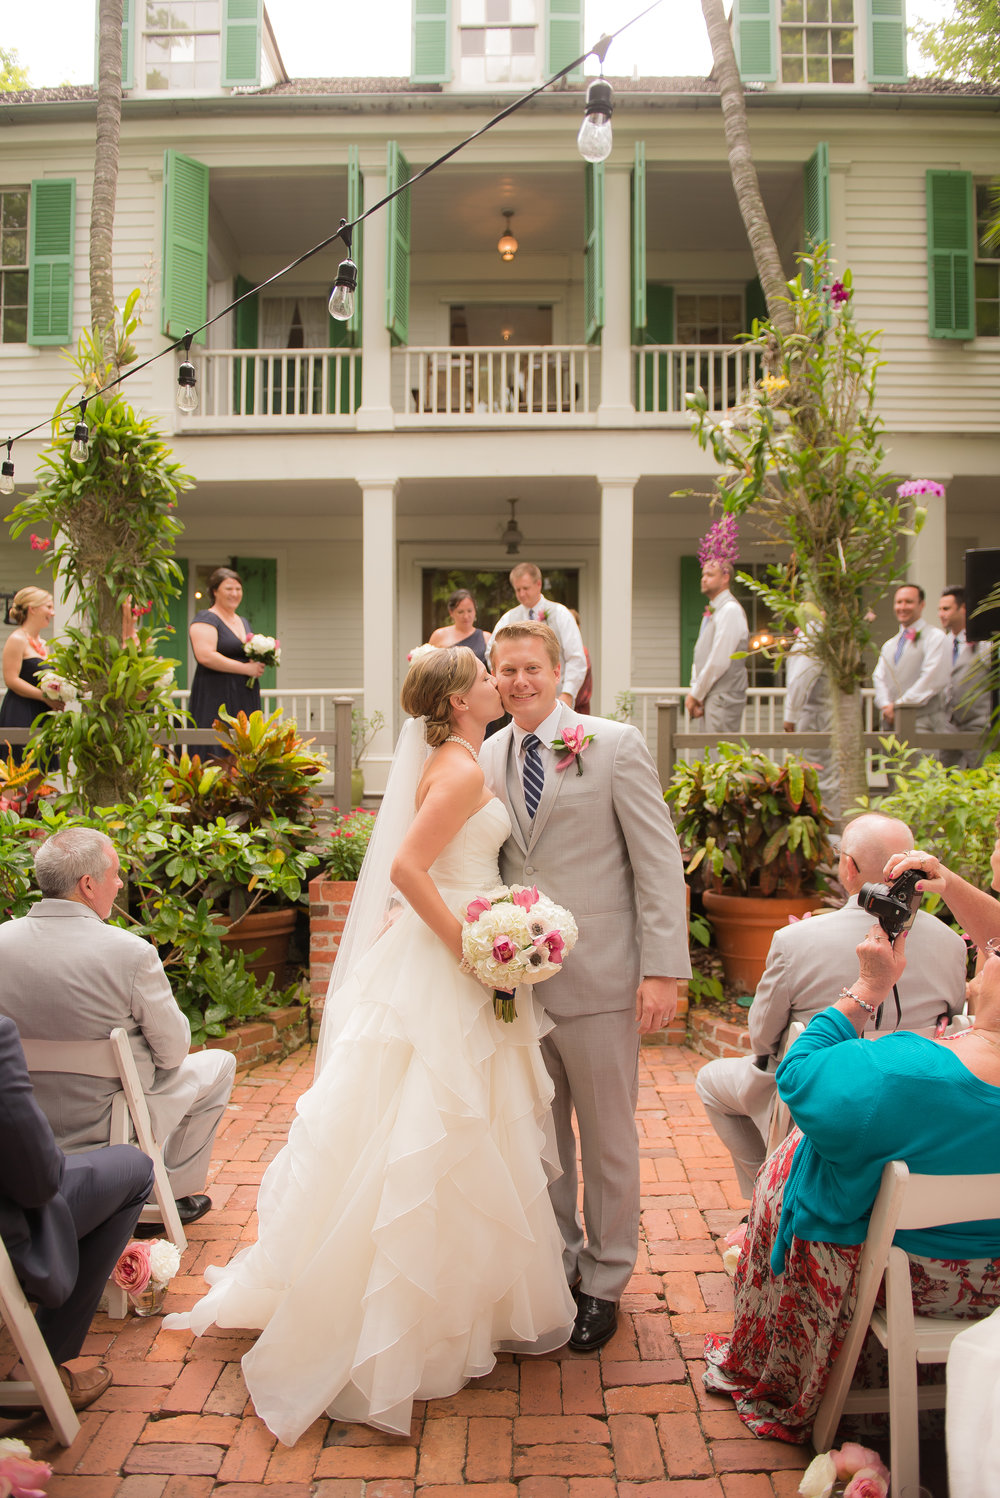 Amanda+James_Audubon House Key West Wedding34.jpg